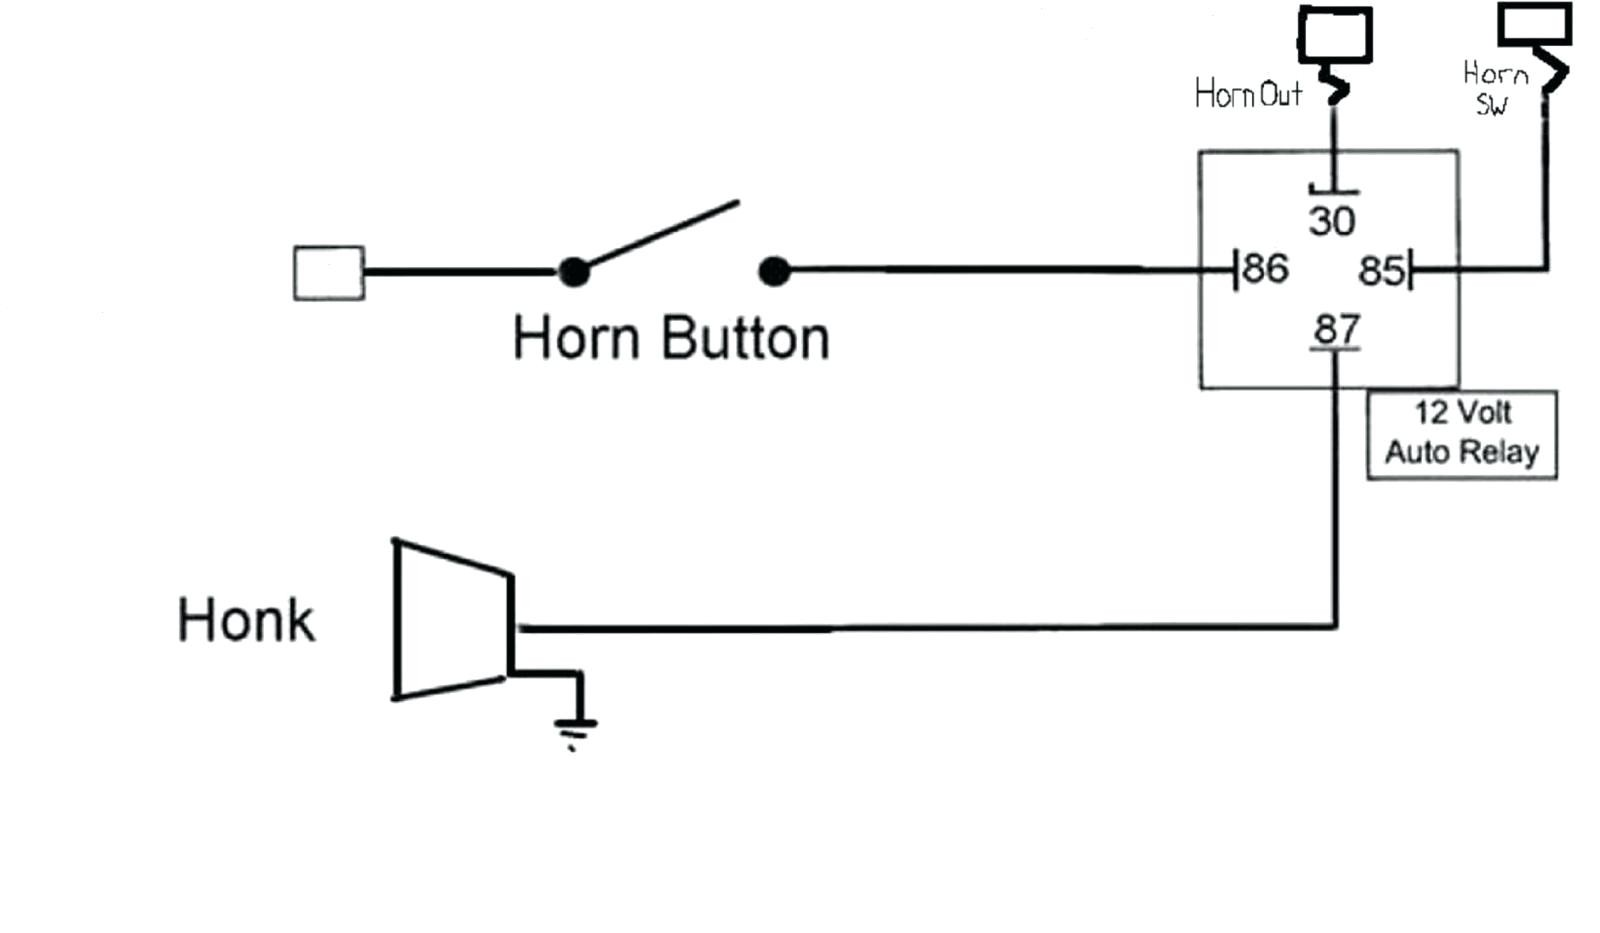 Ry 1918 Diagram Likewise Car Horn Relay Wiring Diagram In Addition Train Horn Schematic Wiring